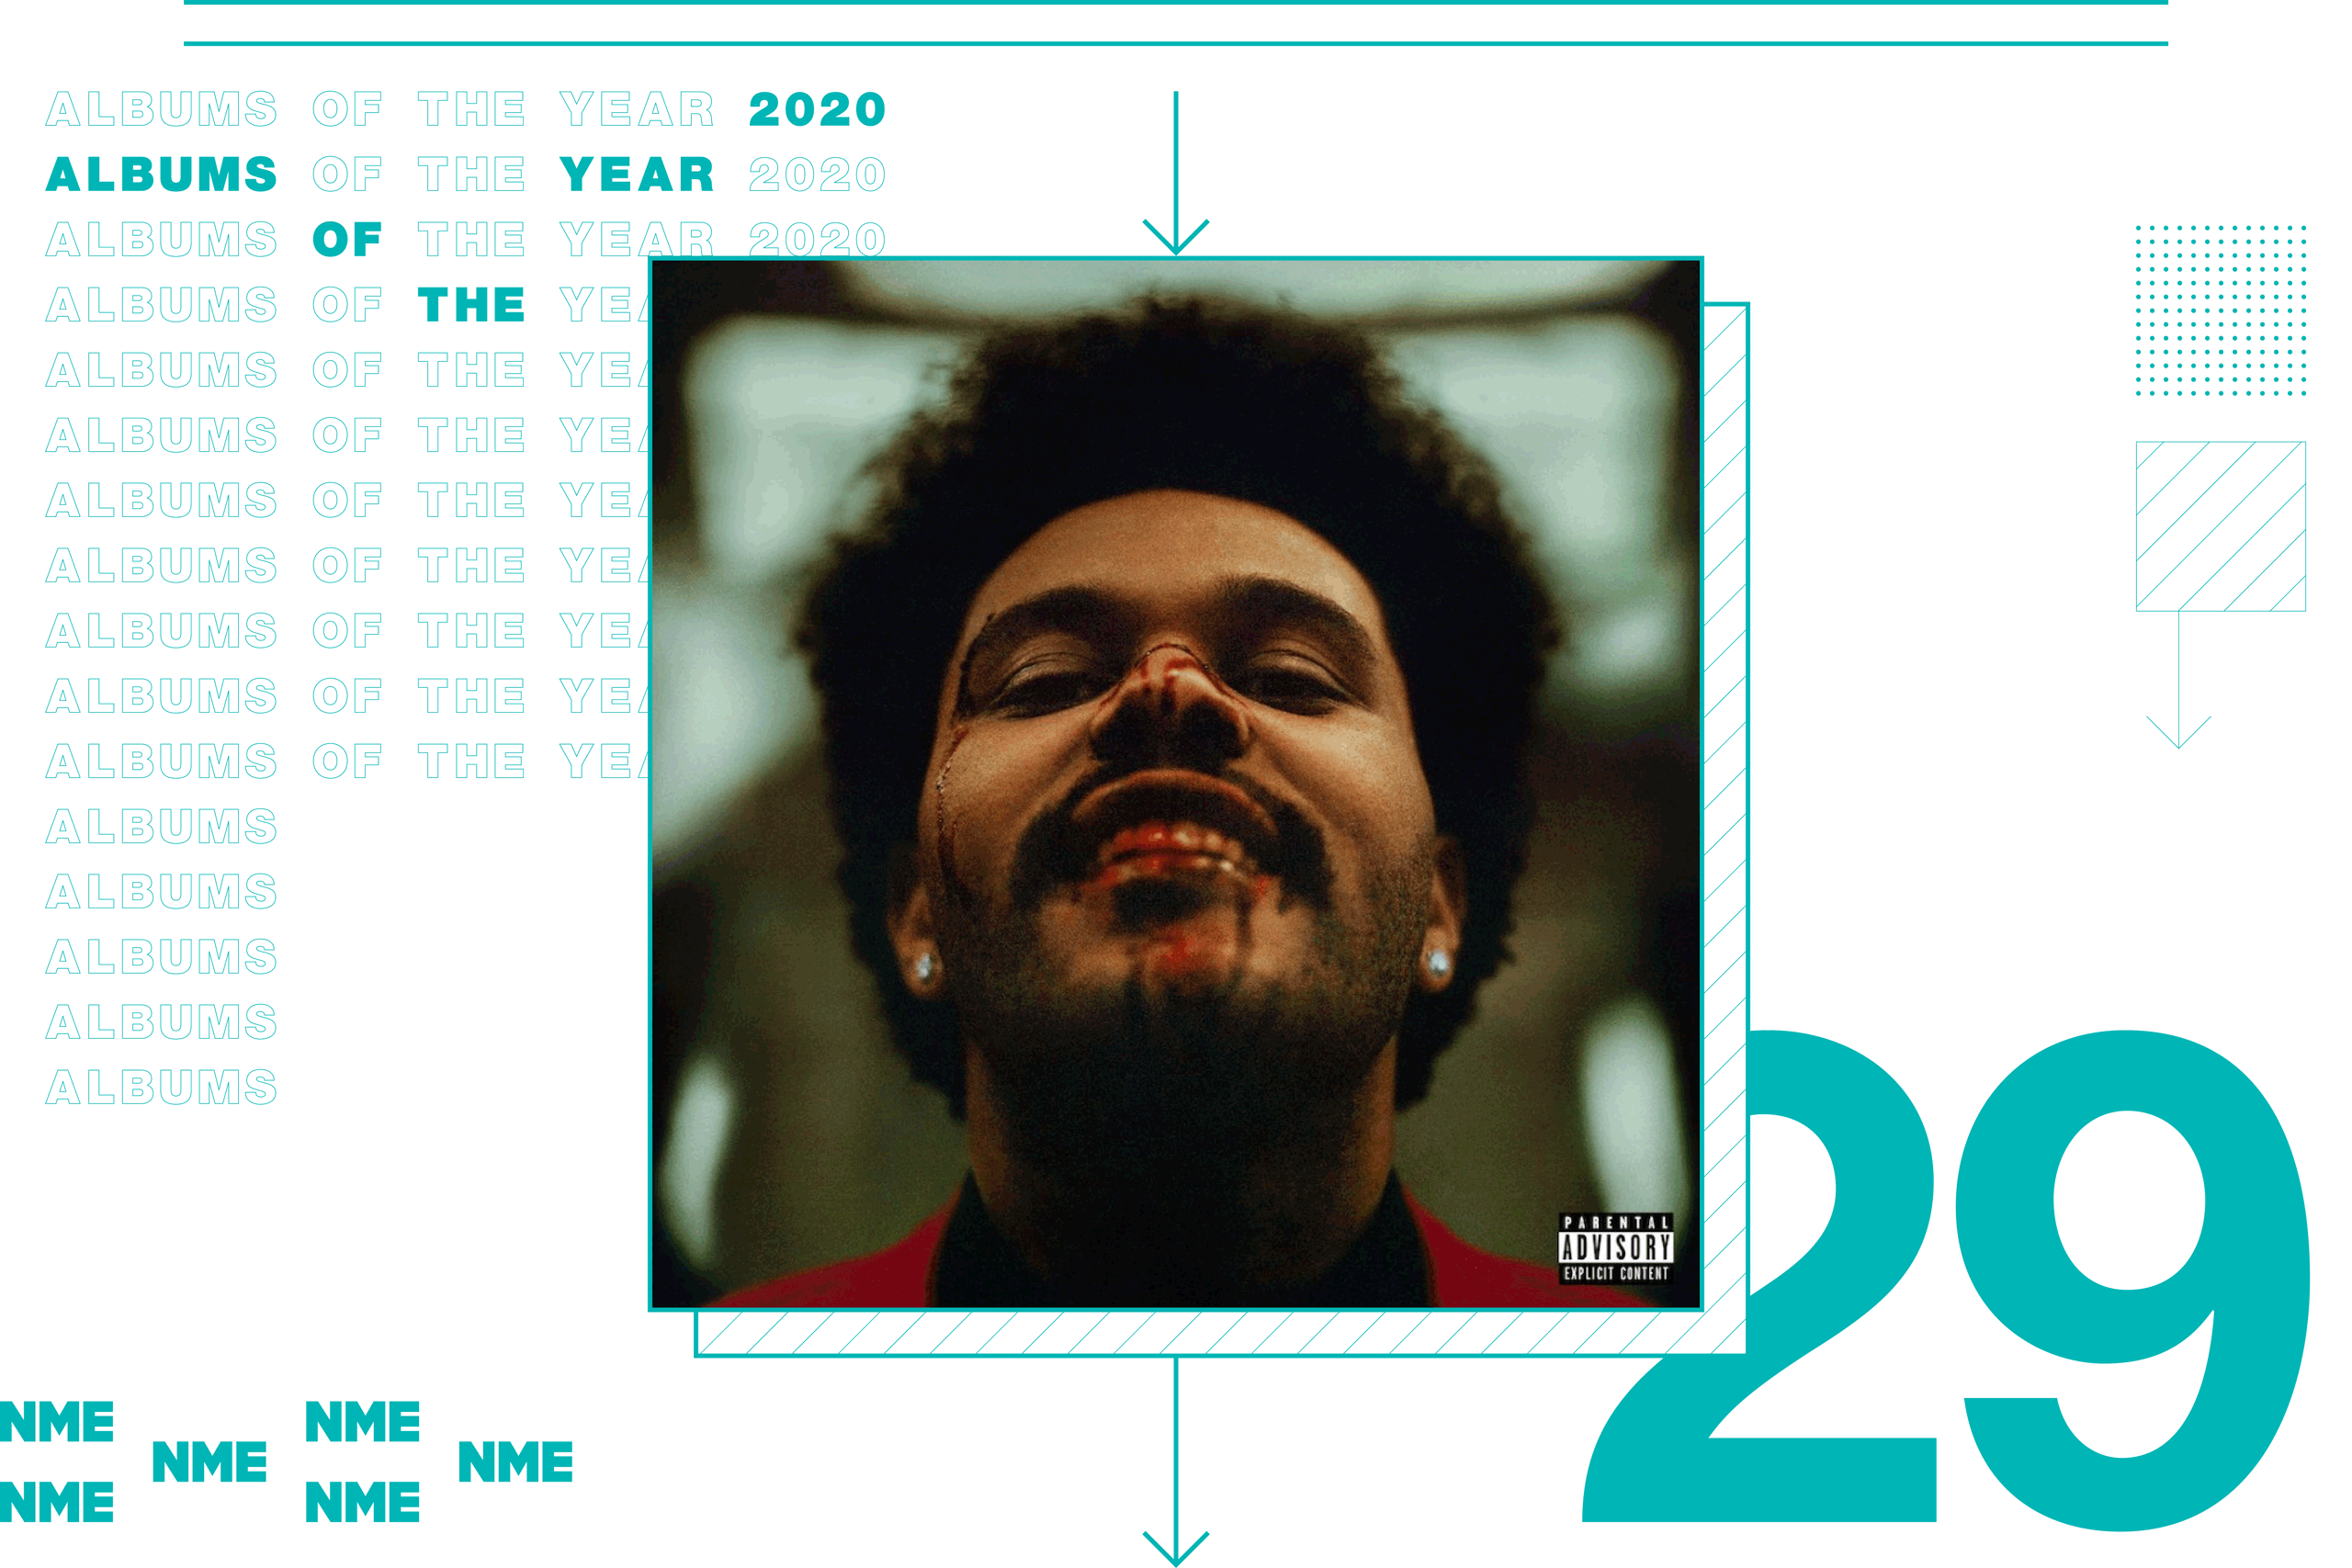 NME Album Of The Year 2020 The Weeknd, 'After Hours'